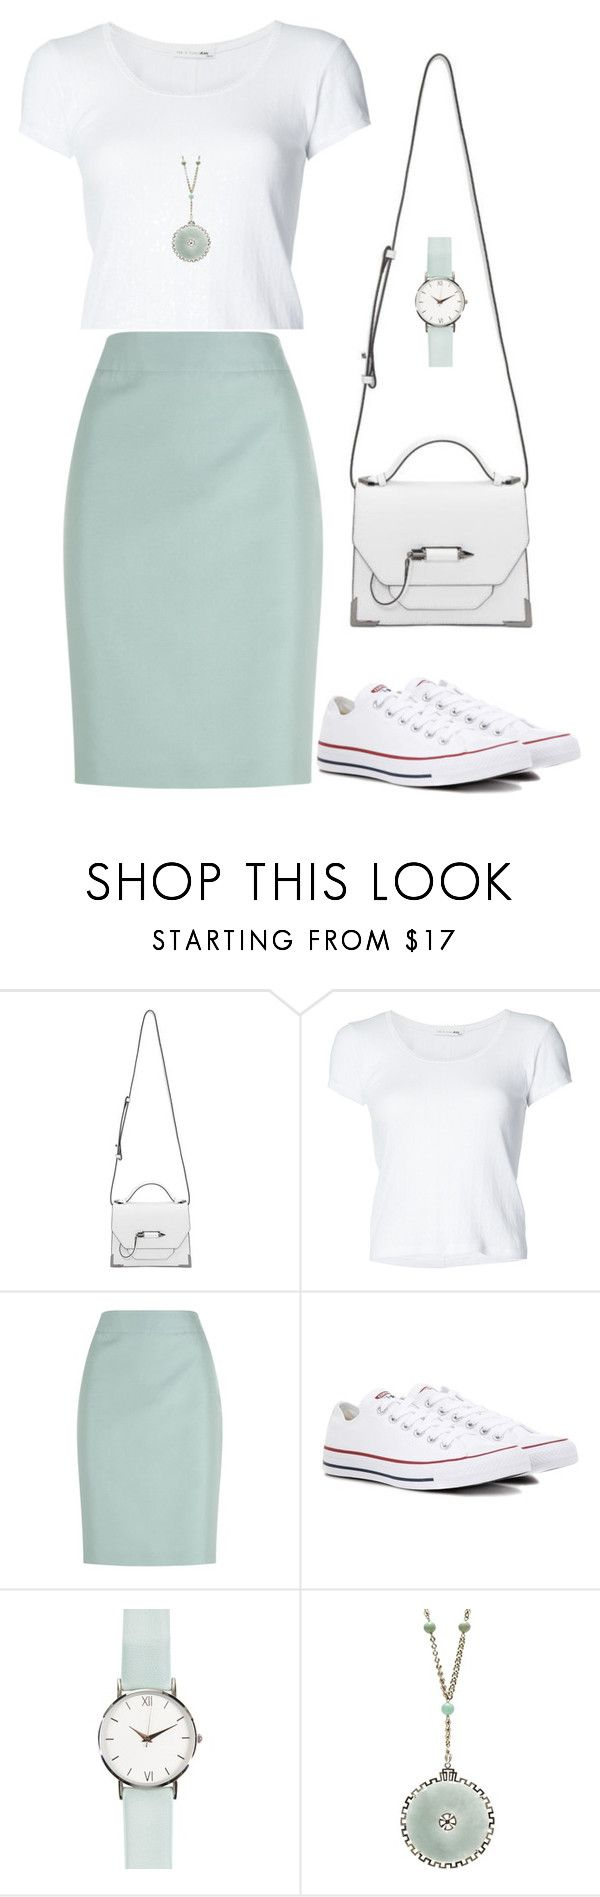 """Green tea latte"" by indirareeves on Polyvore featuring Mackage, rag & bone, Armani Collezioni and Converse"